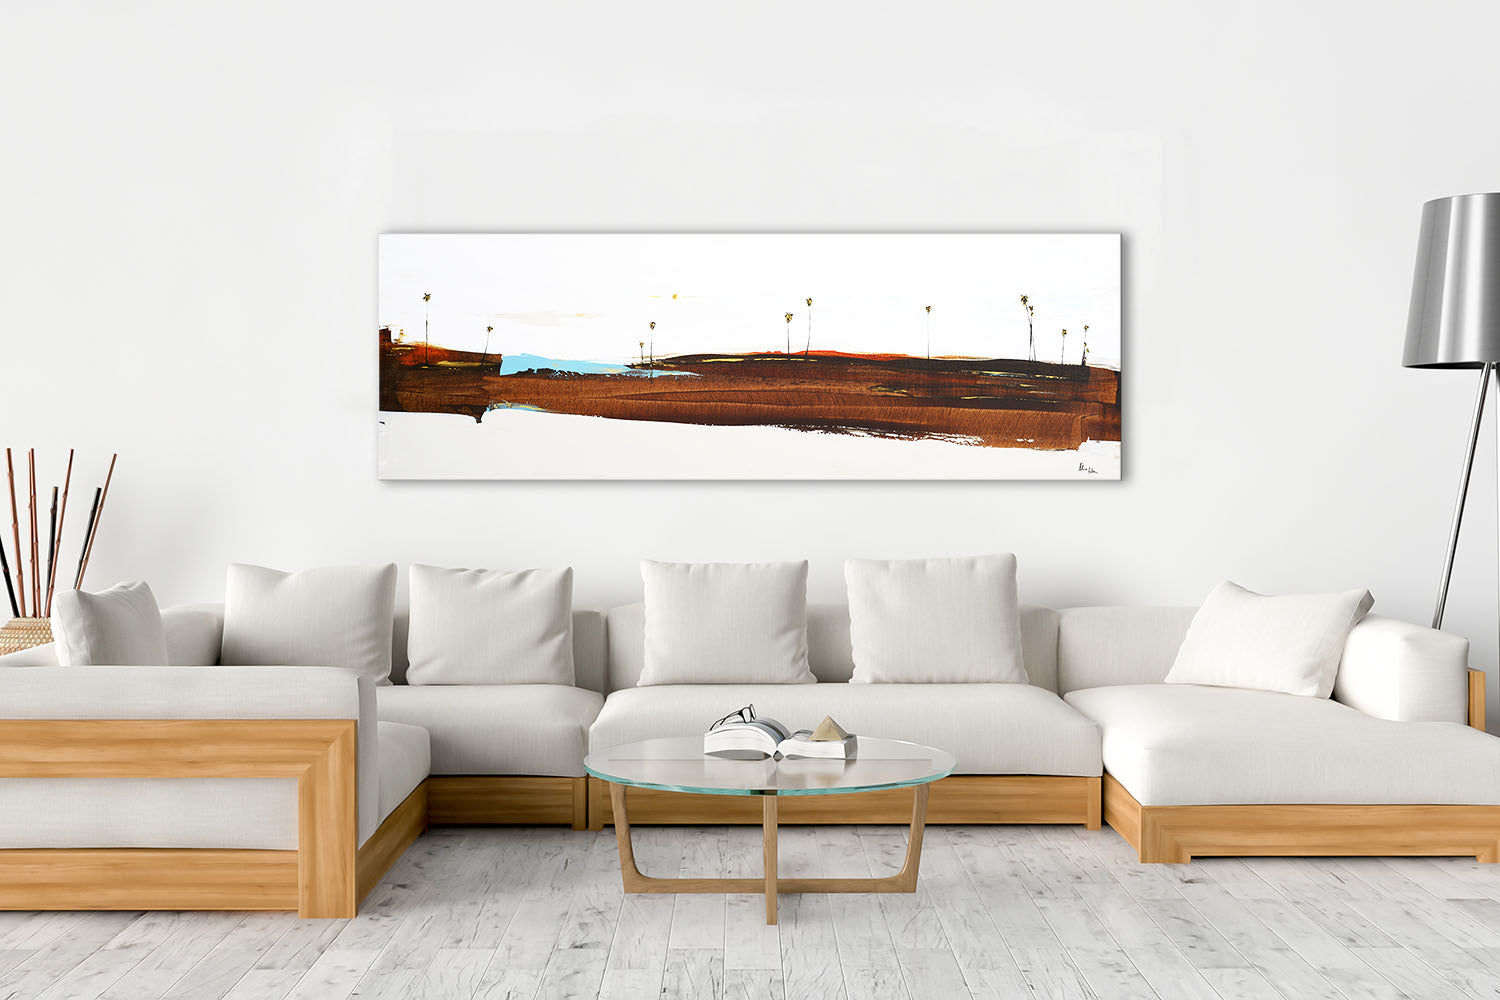 Steve Adam Art on living room wall